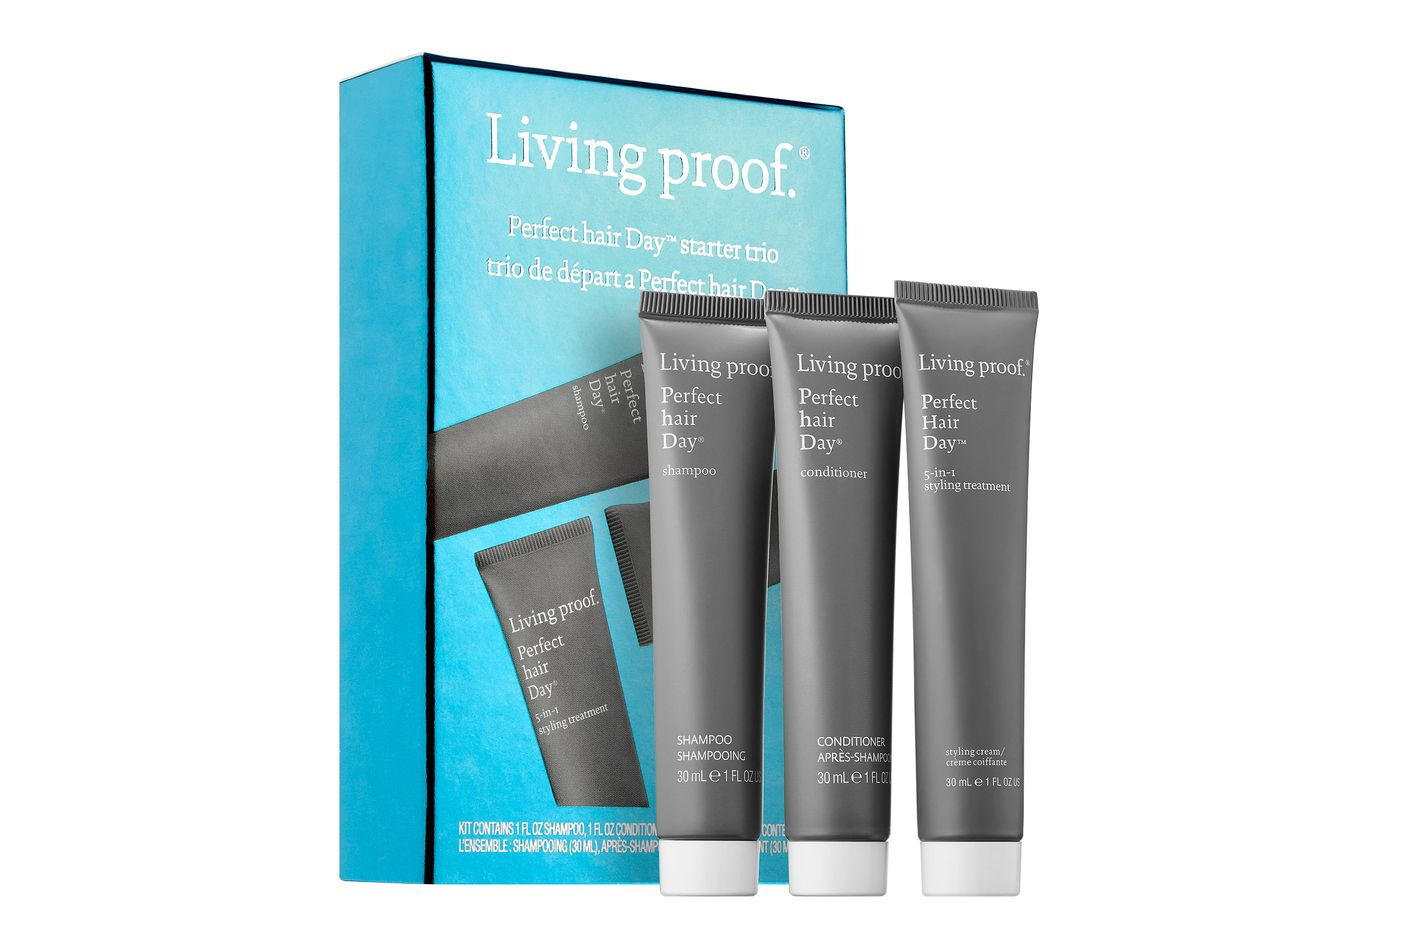 LIVING PROOF Perfect hair Day™ Starter Trio